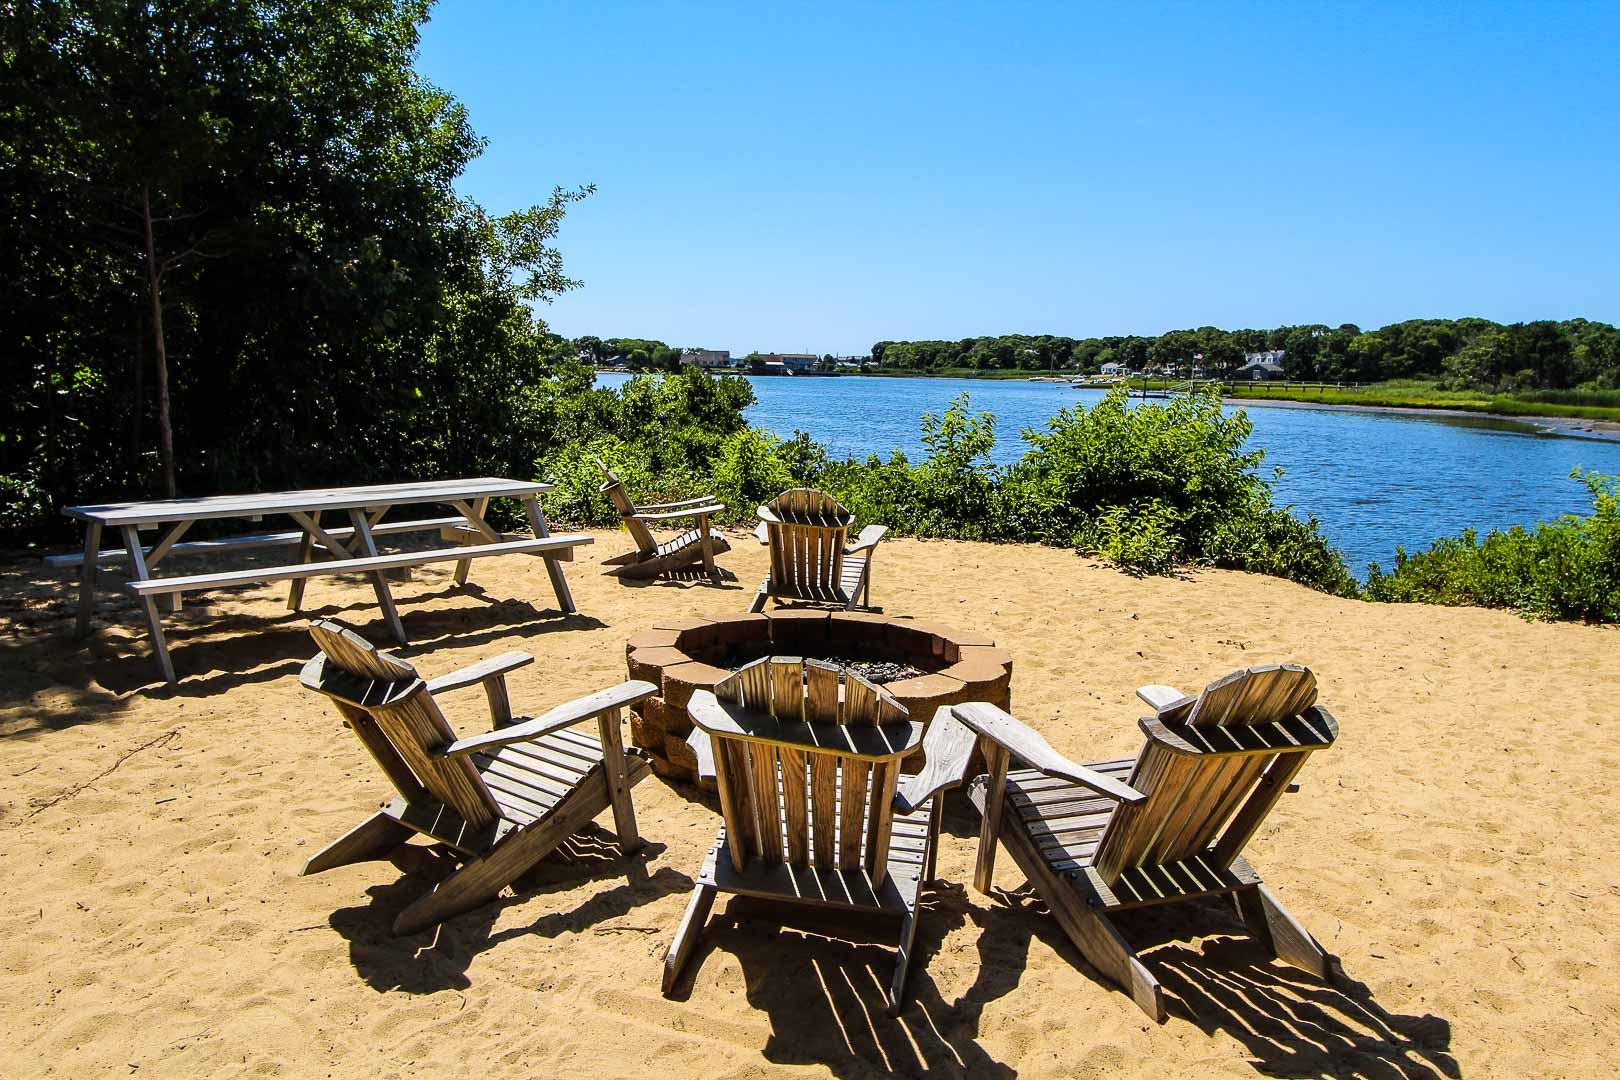 Clear skies and a a refreshing view at VRI's The Cove at Yarmouth in Massachusetts.